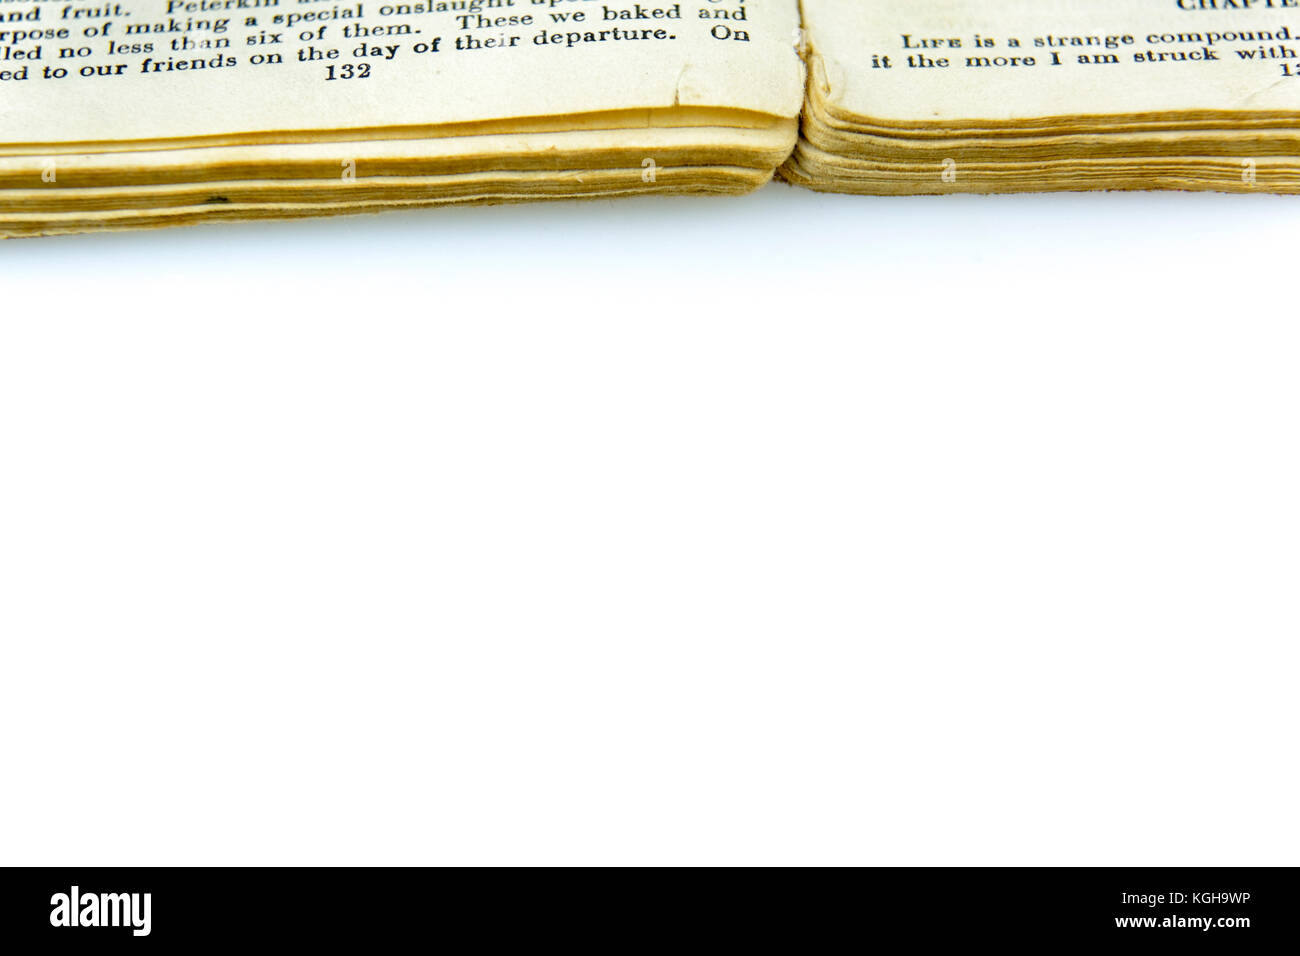 Old antique book with text and worn pages open on white. Vintage print publication background with copy space. Stock Photo